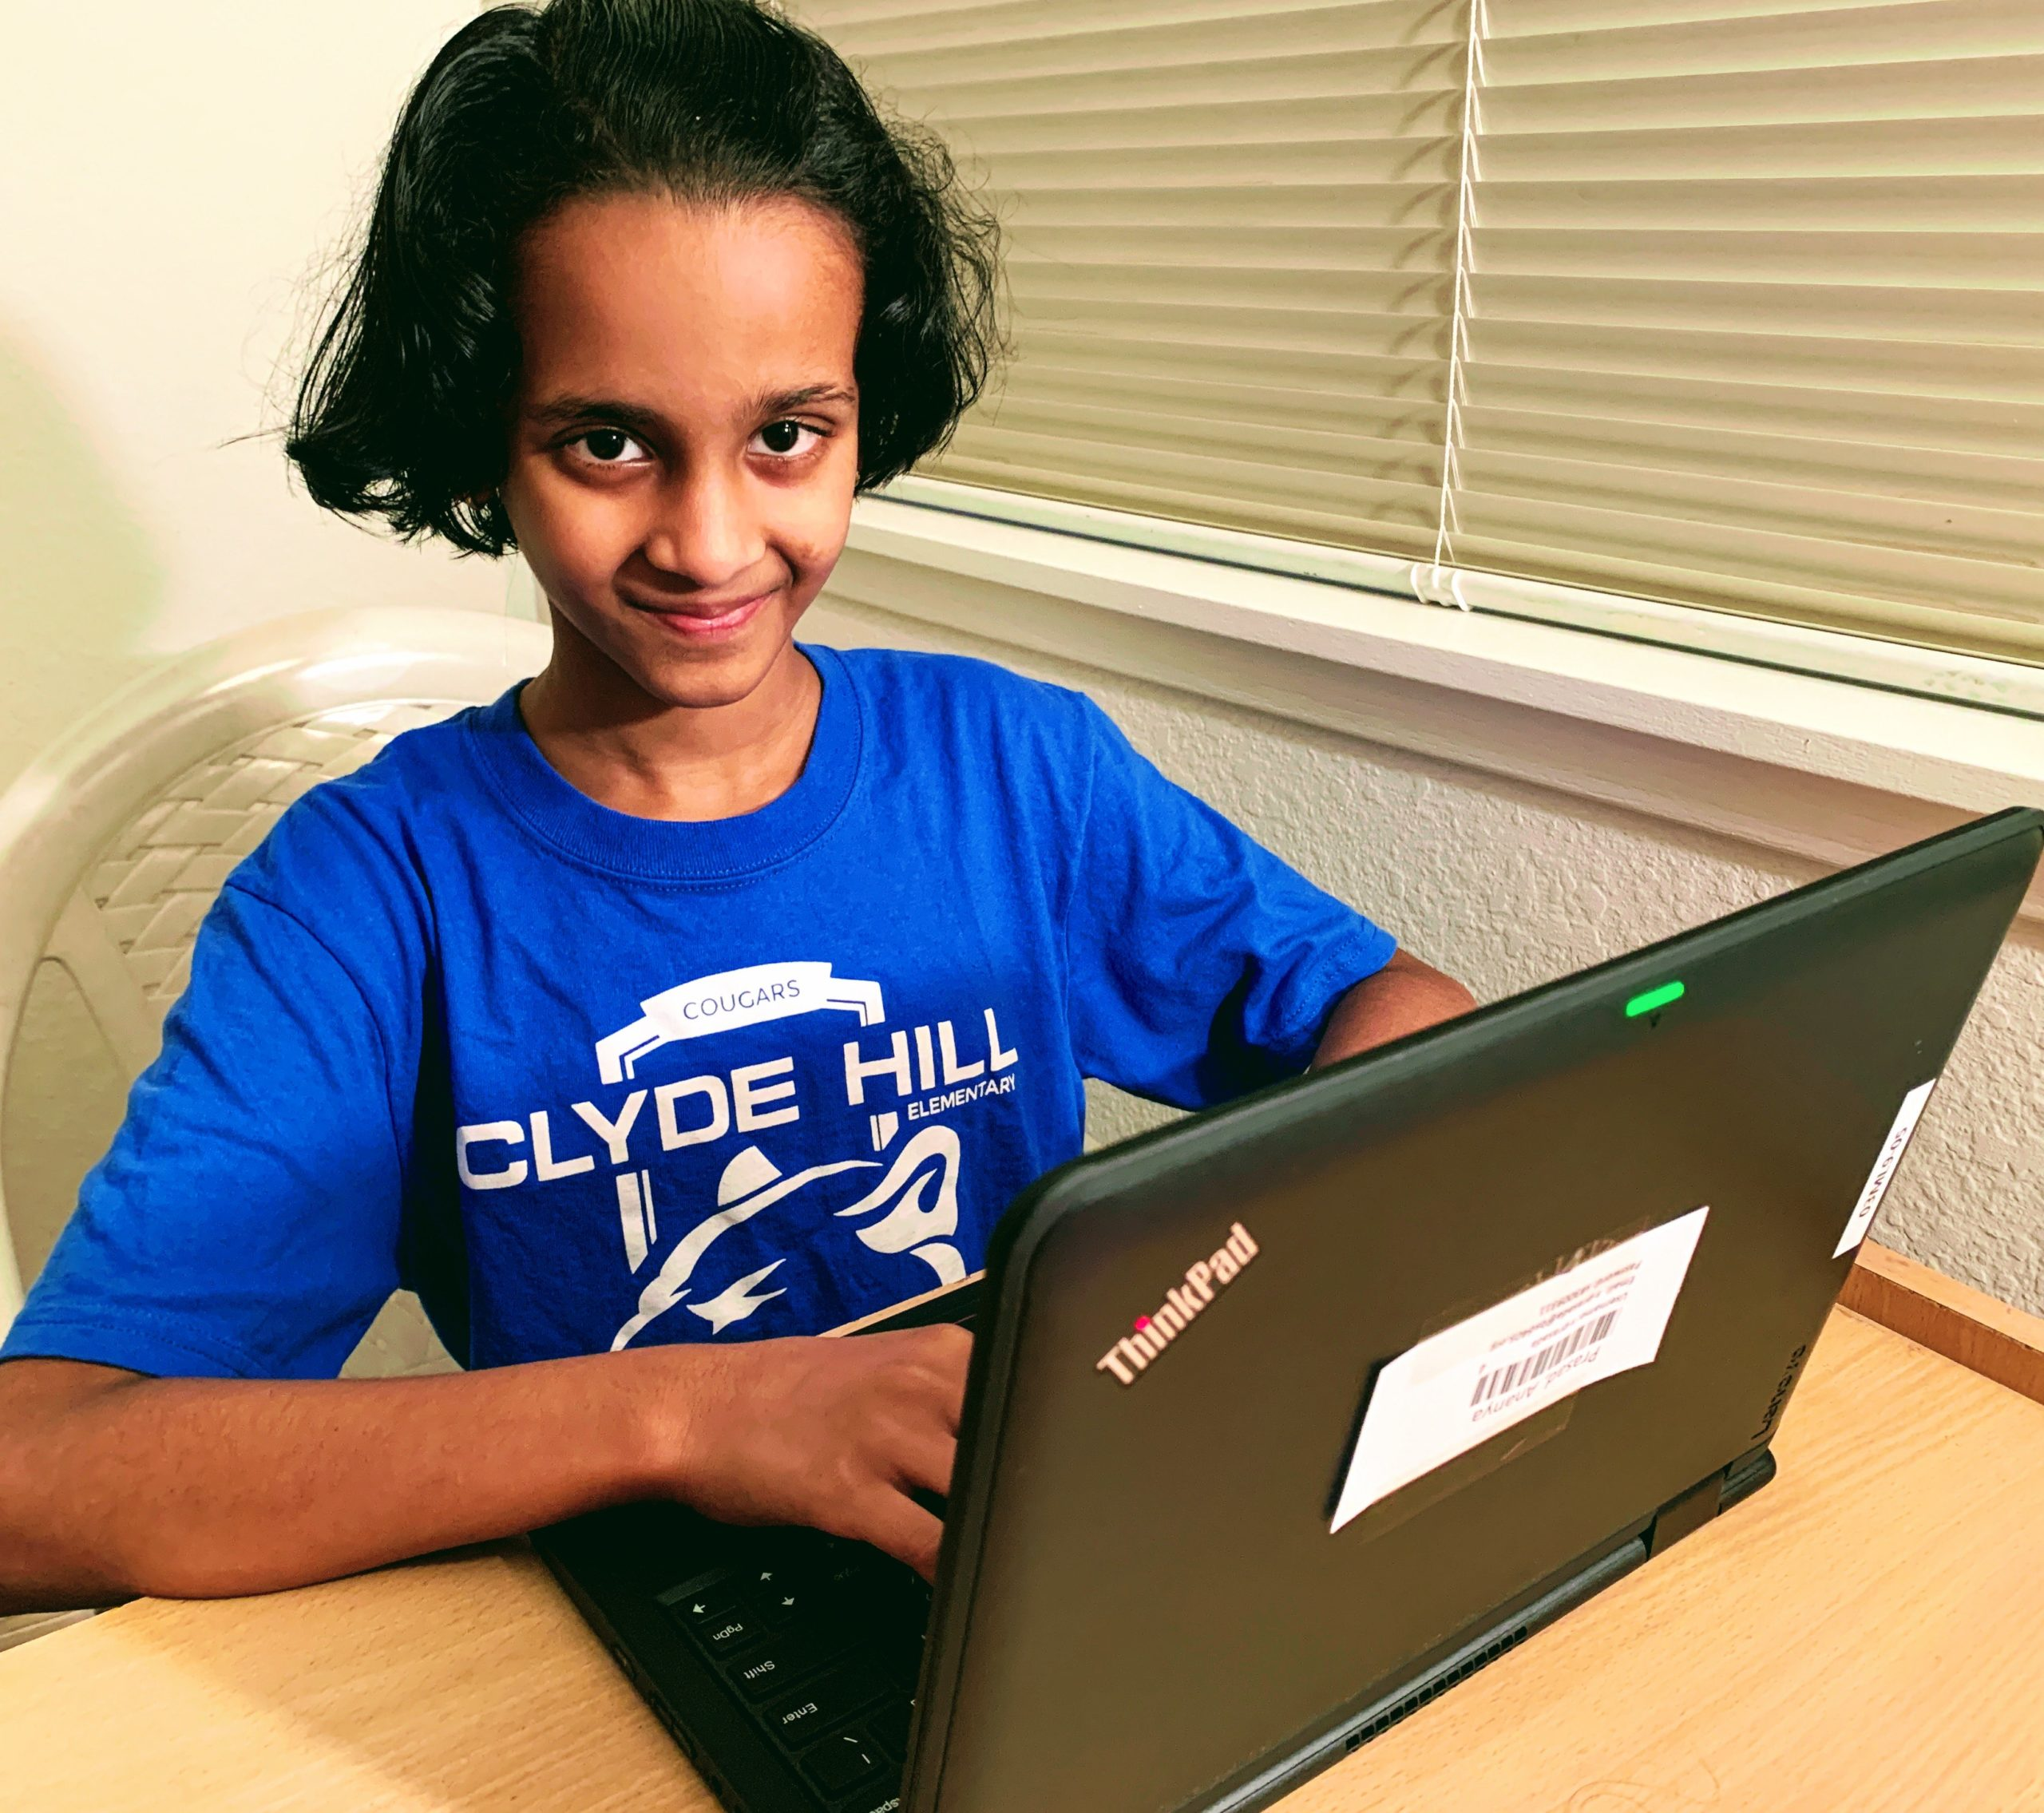 a student wearing a Clyde Hill shirt while typing on a laptop